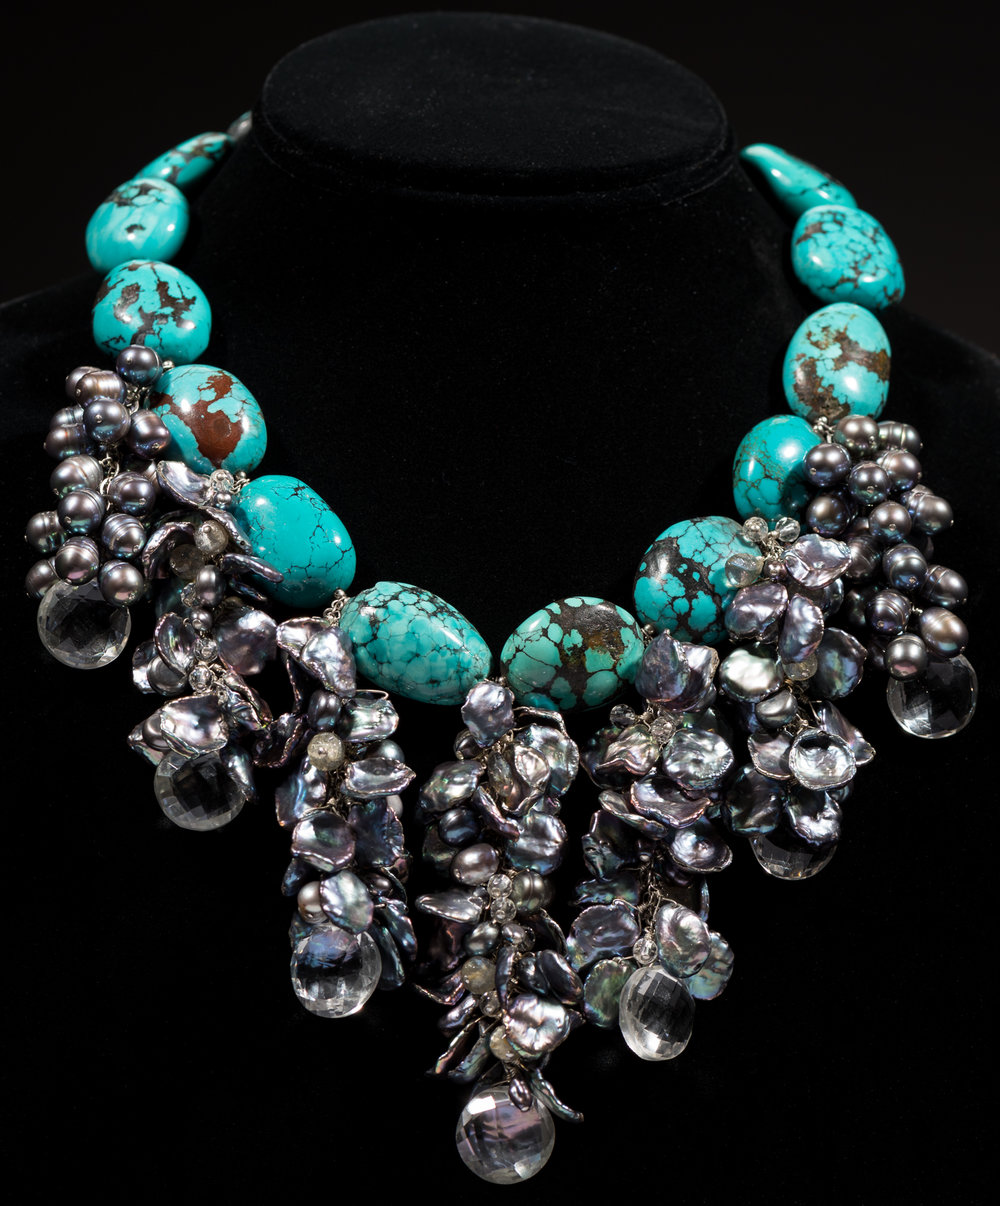 Turquoise colored beads with freshwater pearls and crystal drops